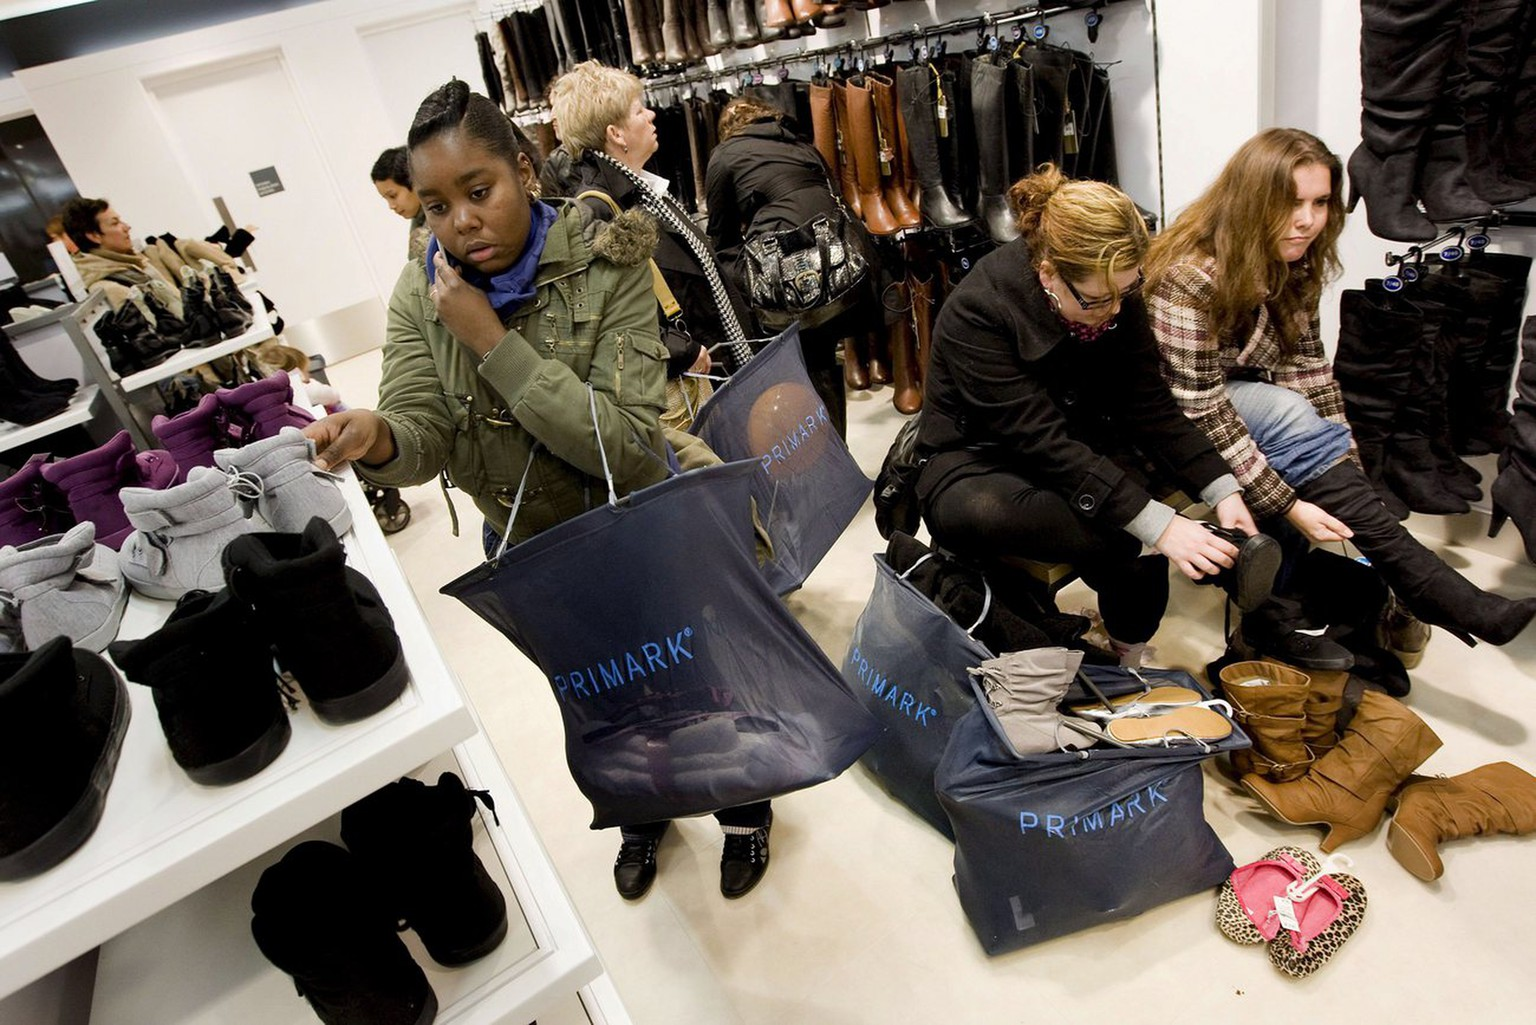 epa01565551 Customers arrive after the first Prmark store opened in Rotterdam, Netherlands on 01 December 2008.  Primark sells 'trendy, afordable clothing', and was established in 1969 in Great Britain. The store currently has stores in Ireland, Great Britain, Spain and, from 01 December, the Netherlands.  EPA/ED OUDENAARDEN